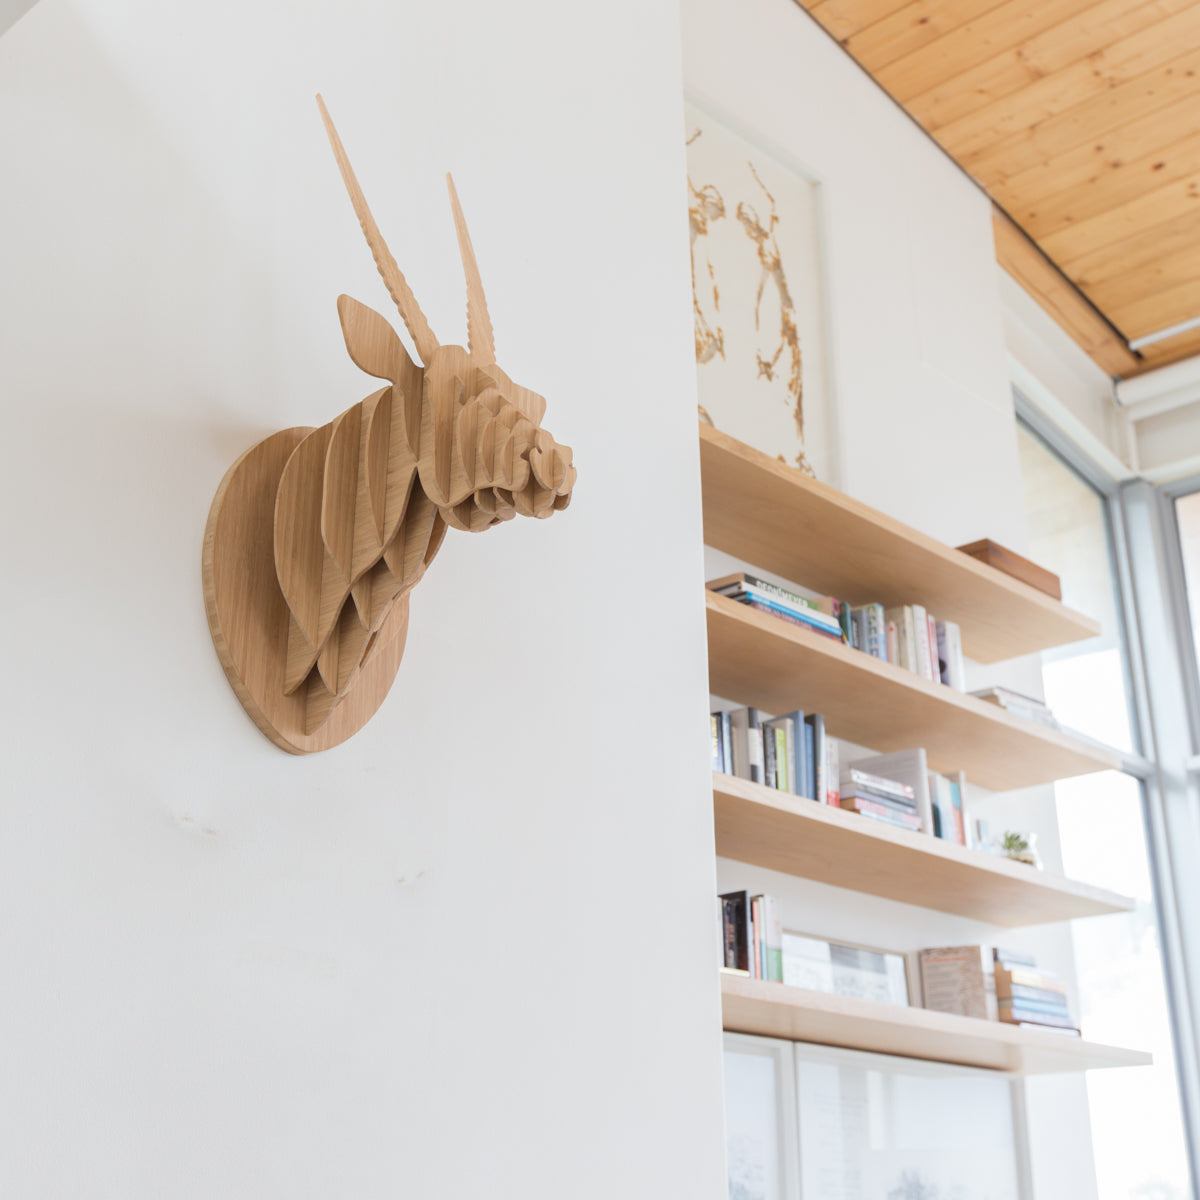 Oryx Trophy Head in Bamboo, Head On Design, recycled paperboard